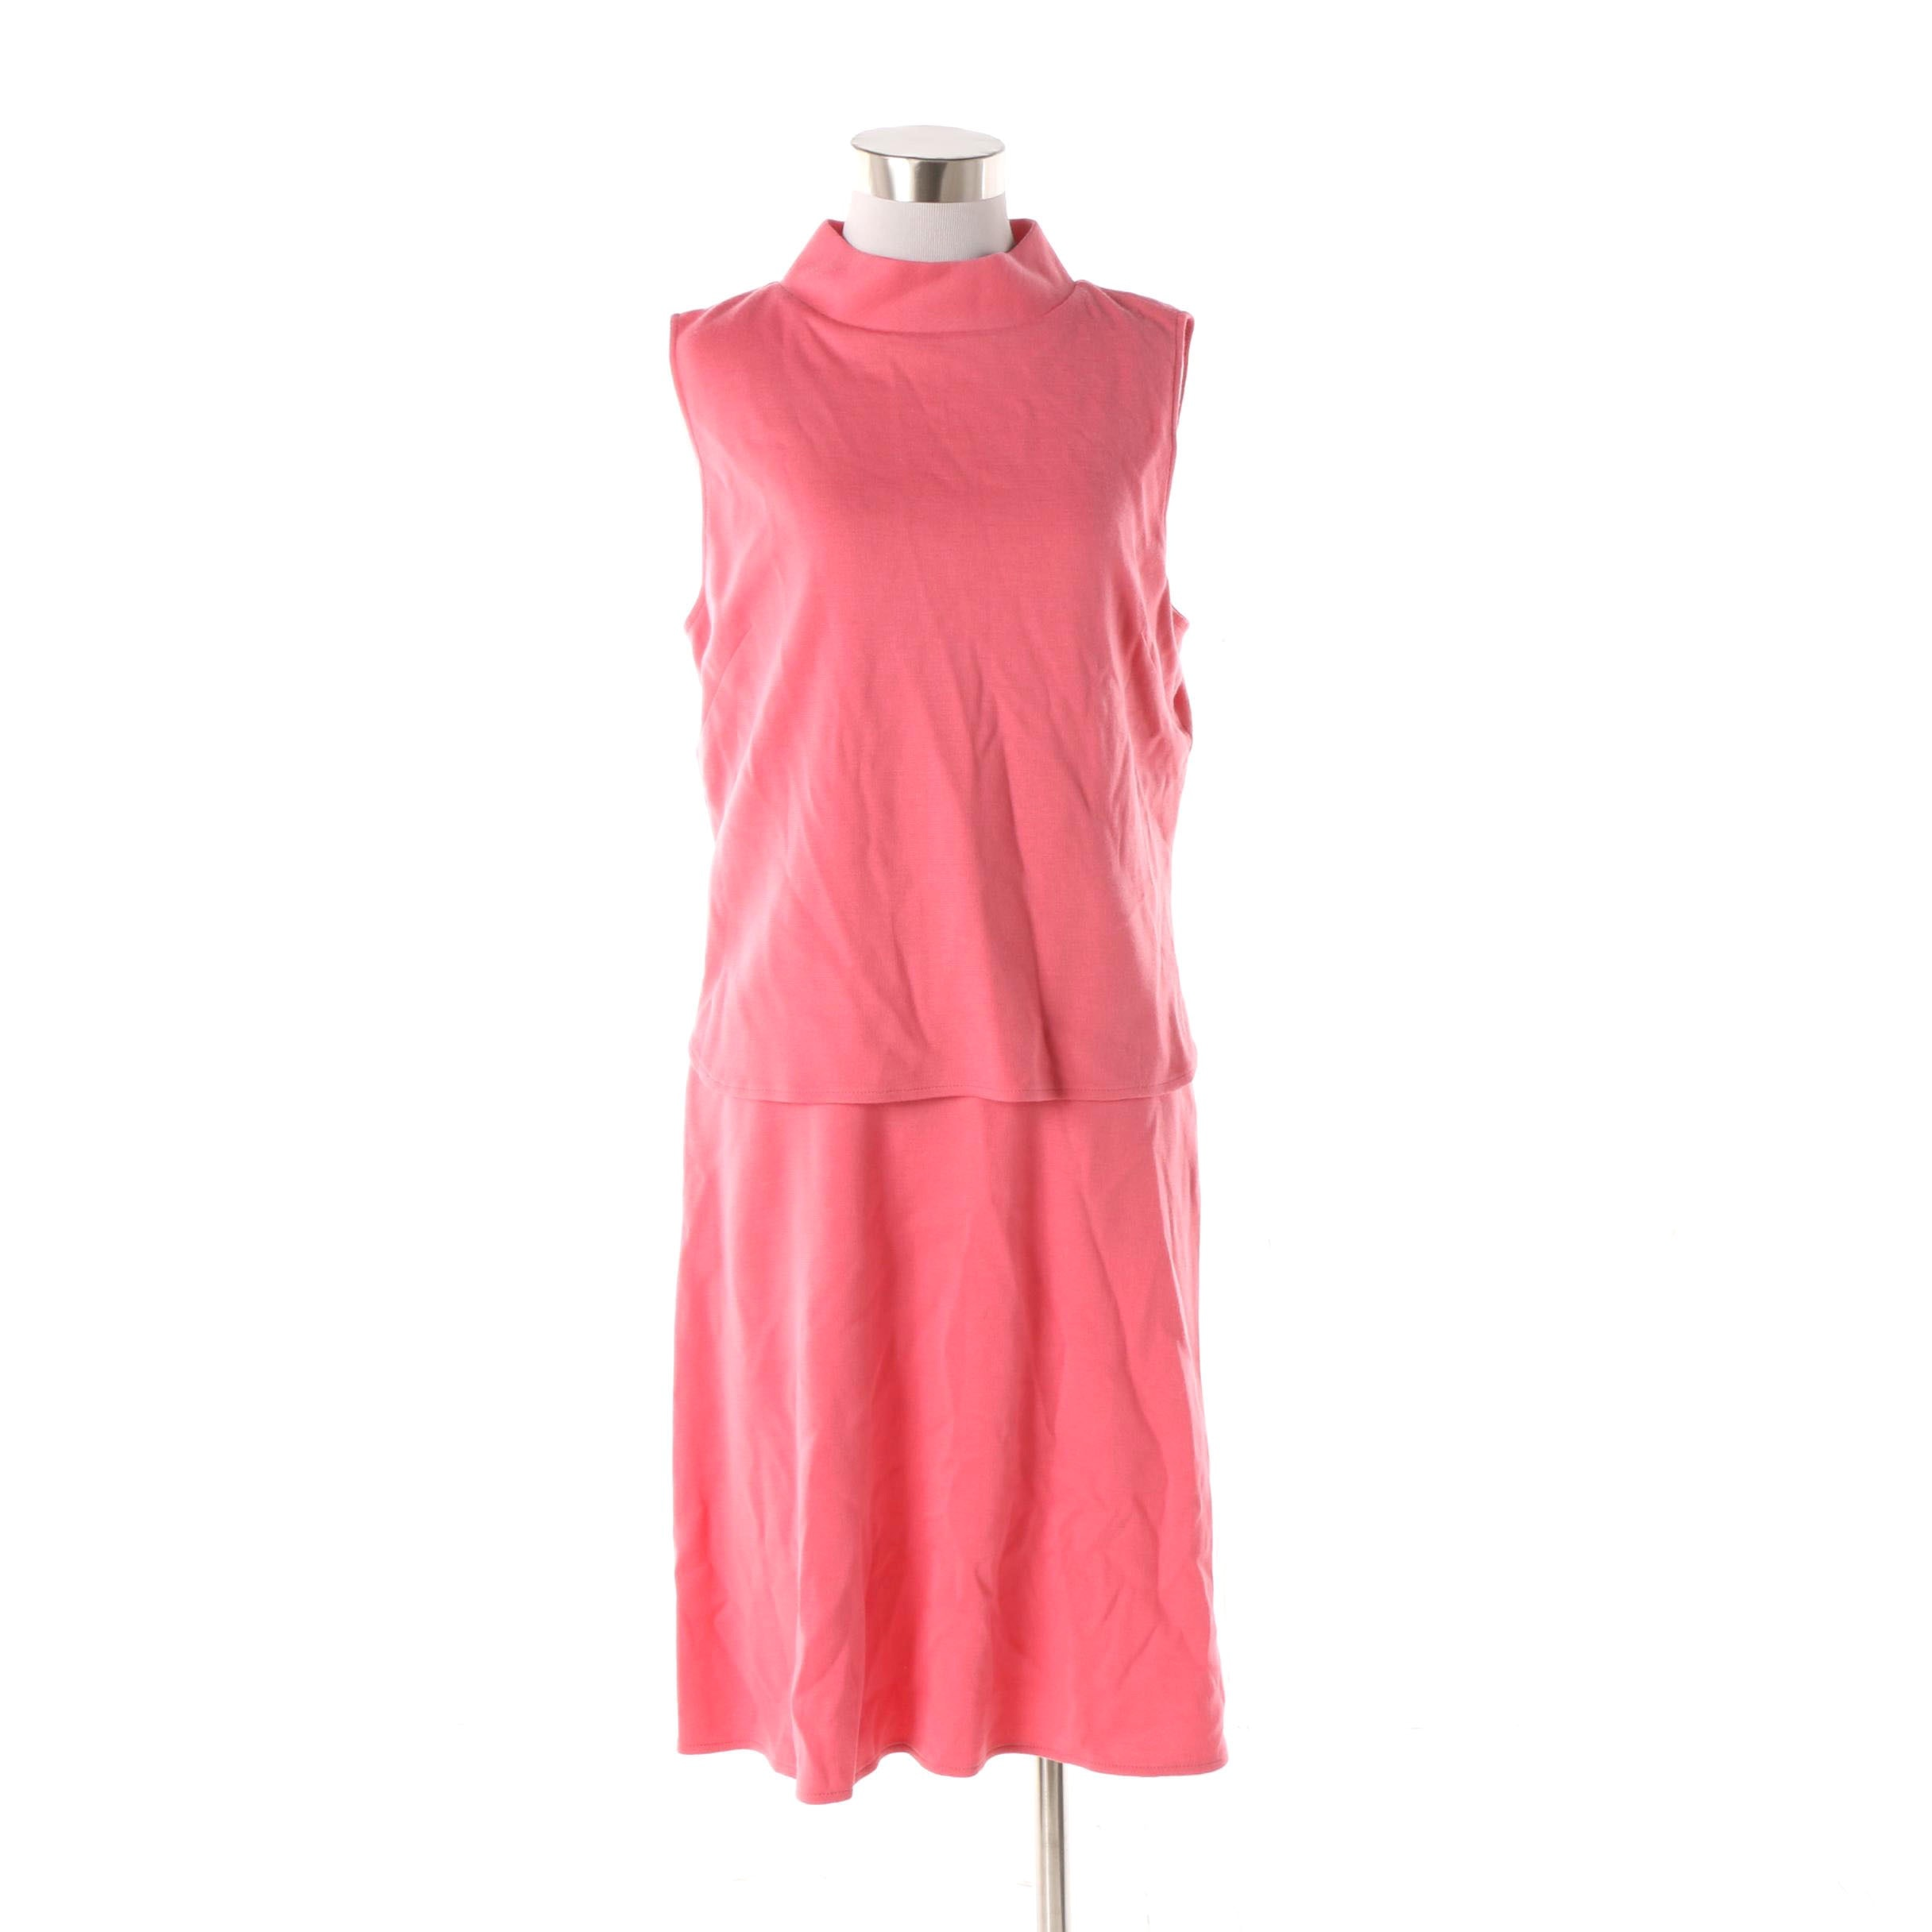 St. John Coral Pink Overlay Bodice Sleeveless Dress